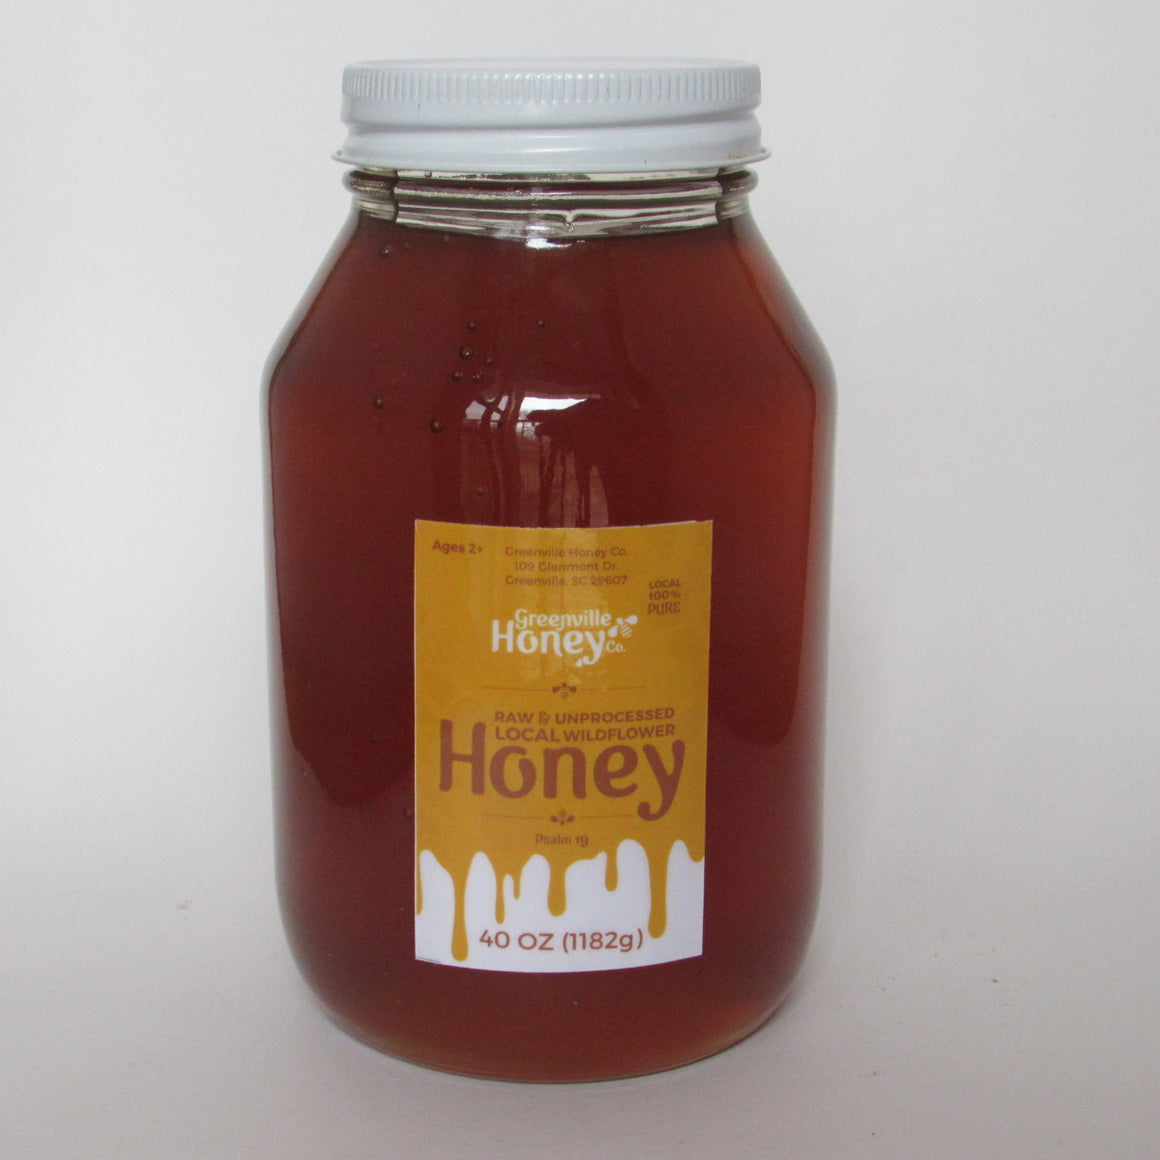 Wildflower-light, fruity taste; 40 oz. Jar - Local Greenville, SC Honey